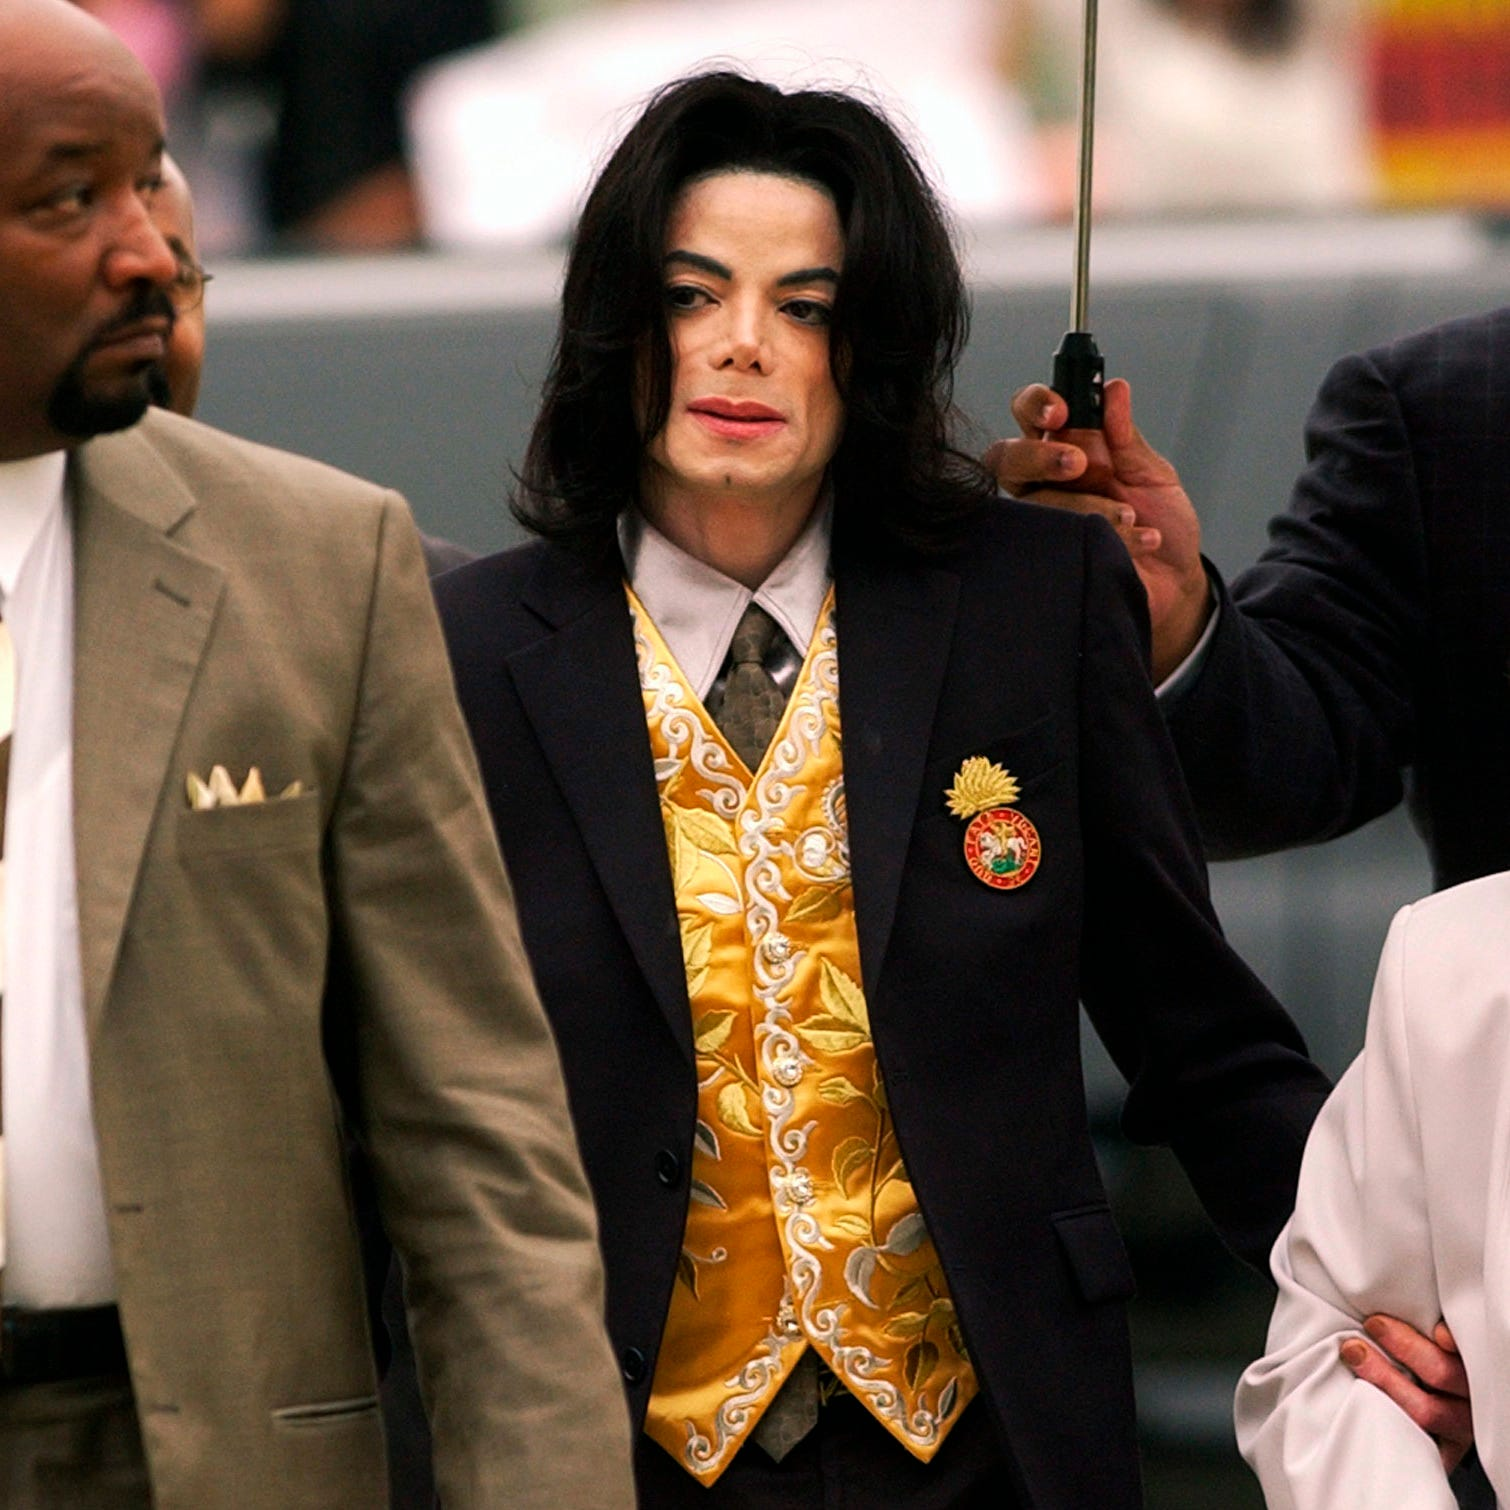 Michael Jackson estate slams 'Leaving Neverland'; here's what we learned from watching